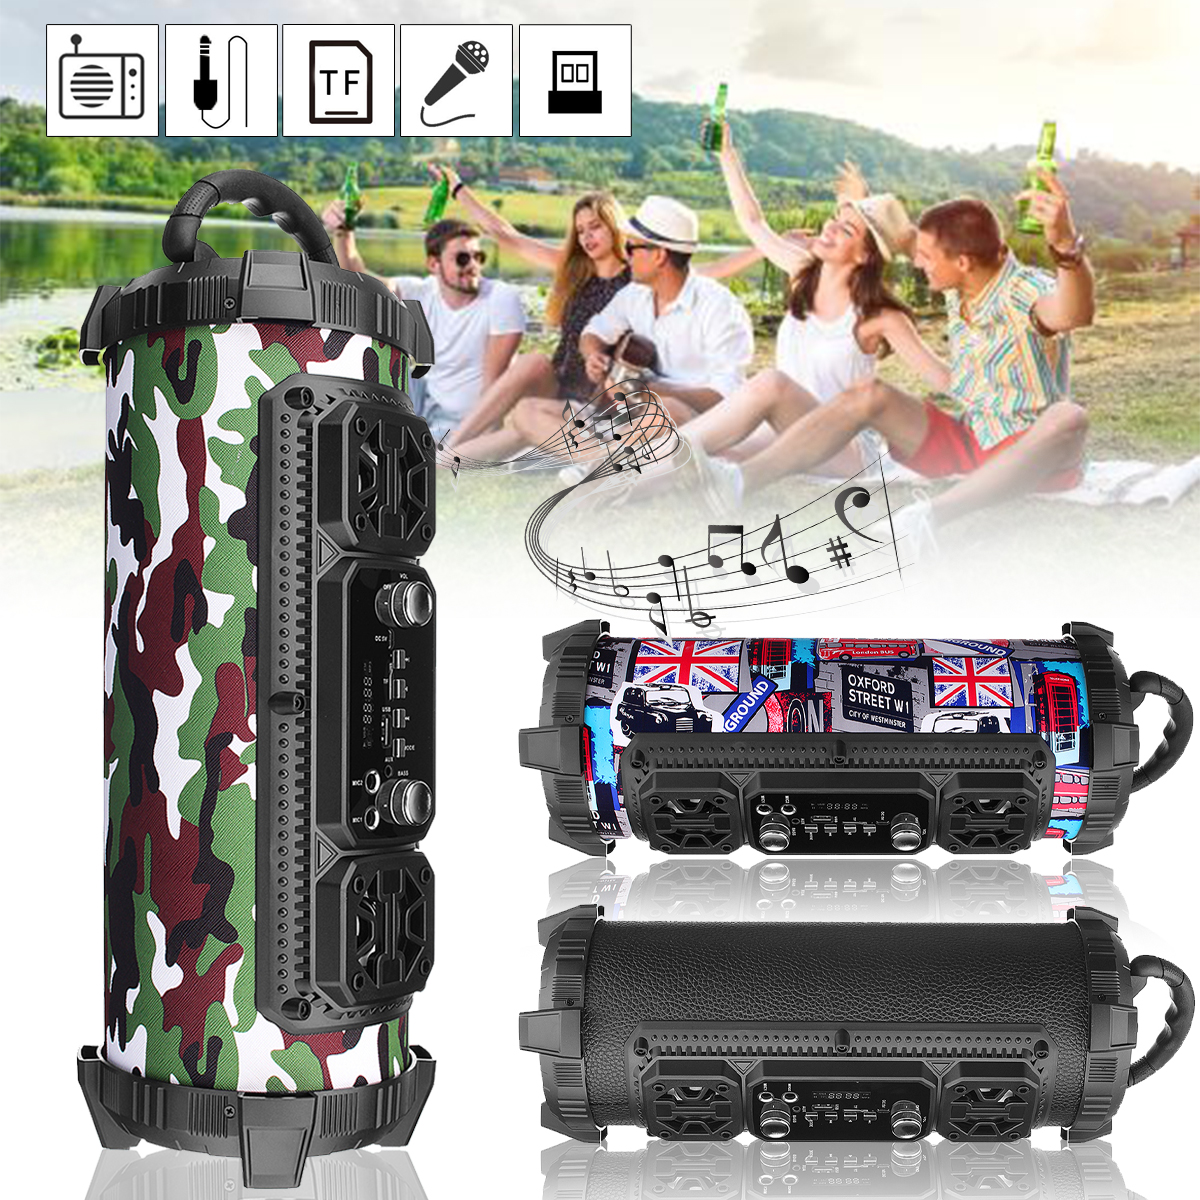 Portable Speakers 20W Wireless Bluetooth Speaker Stereo Sport Subwoofer Speaker Outdoor Radio Loundspeaker Wifi Bass Speaker digital treasures lyrix jive jumbo bluetooth speaker speakers retail packaging